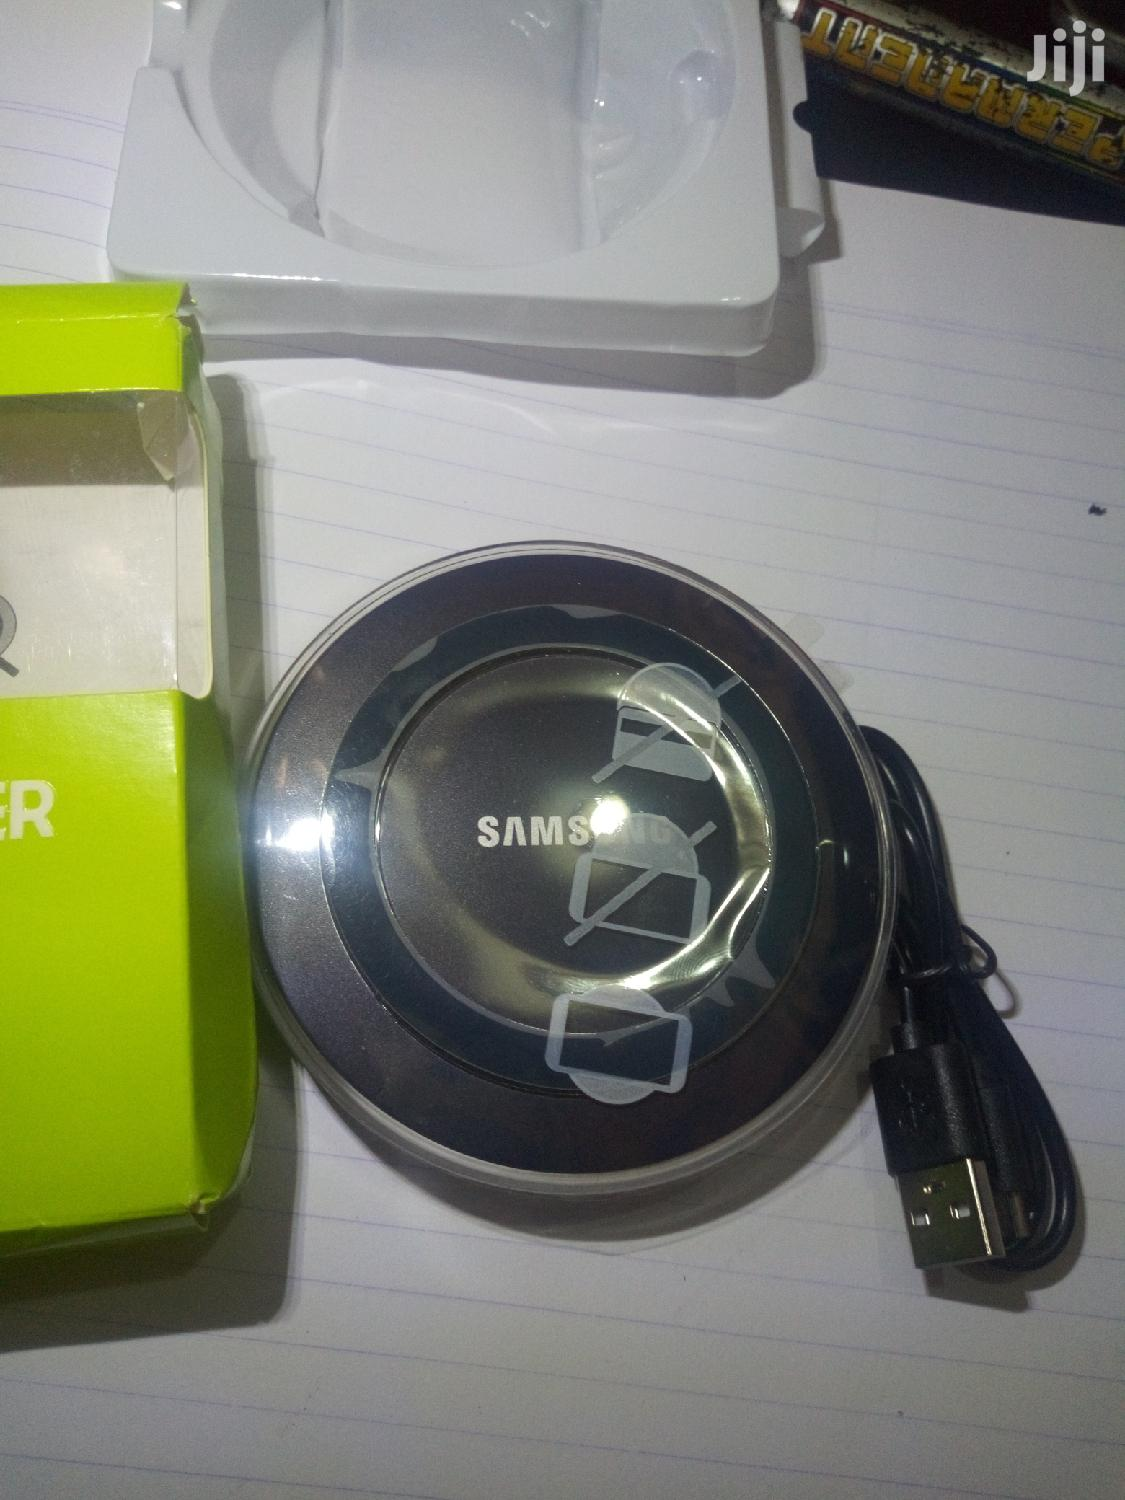 Original Samsung Wireless Charger Adapter Charger   Accessories for Mobile Phones & Tablets for sale in Kampala, Central Region, Uganda